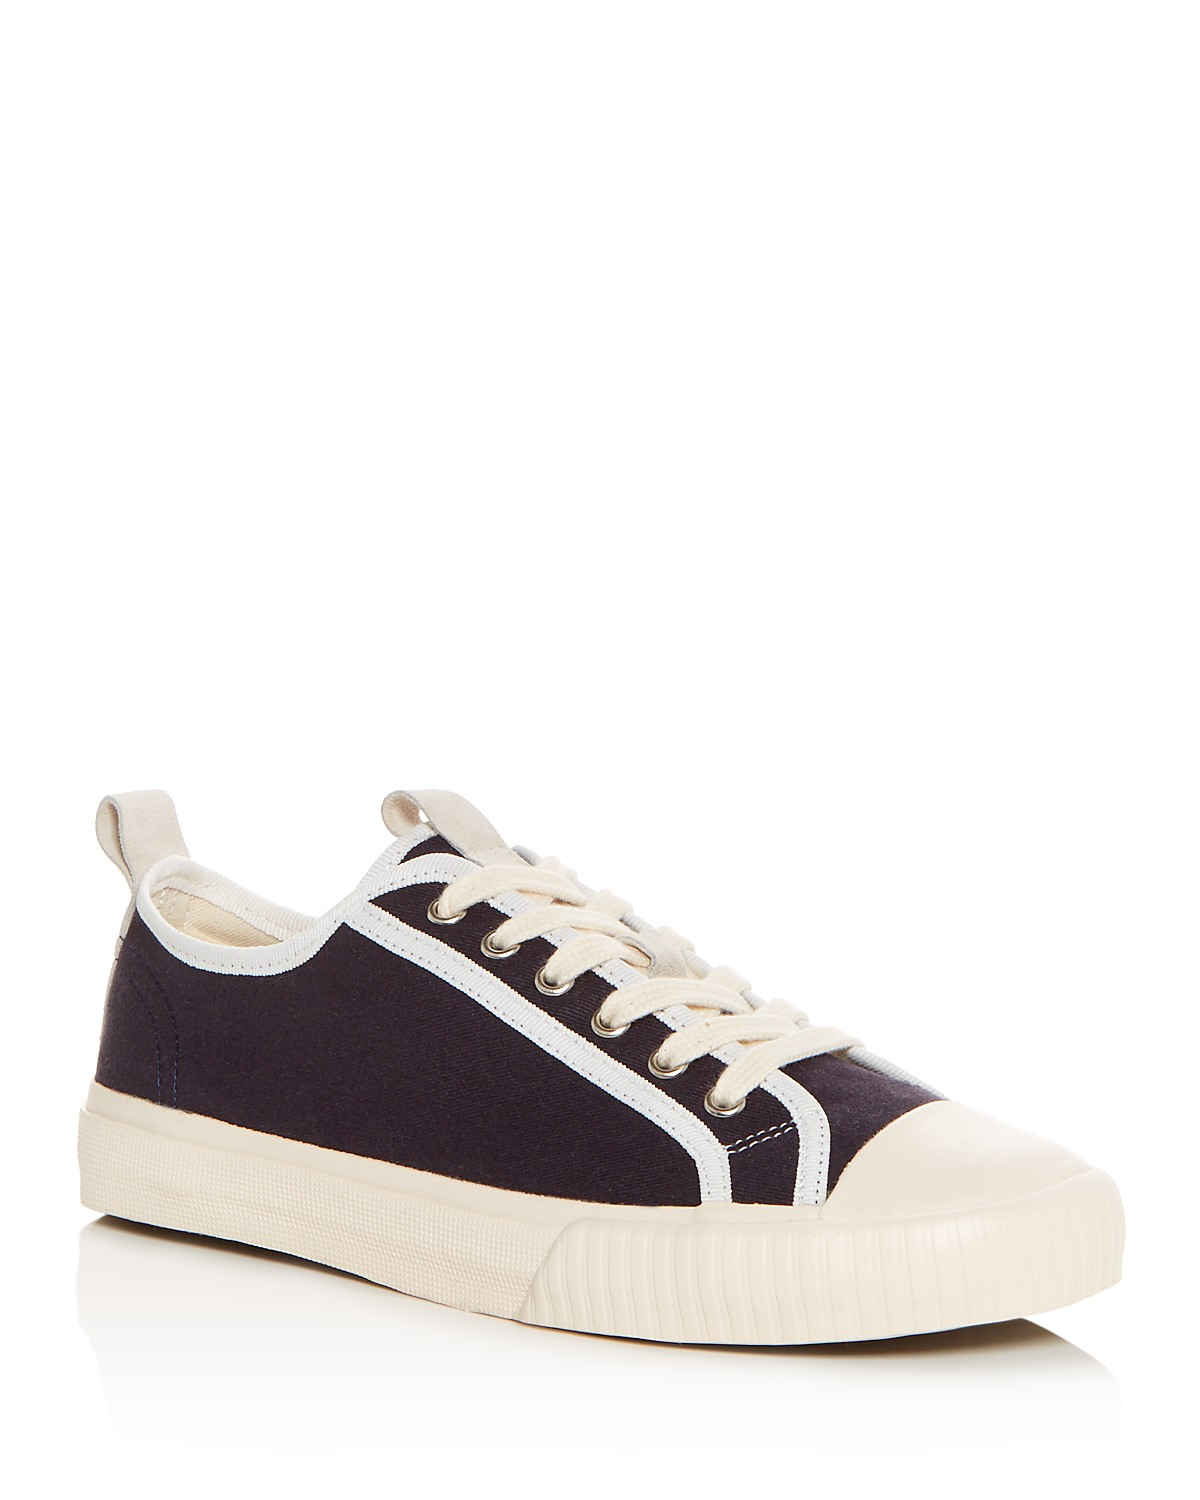 GRENSON Men's Lace Up Sneakers vyWNZfu